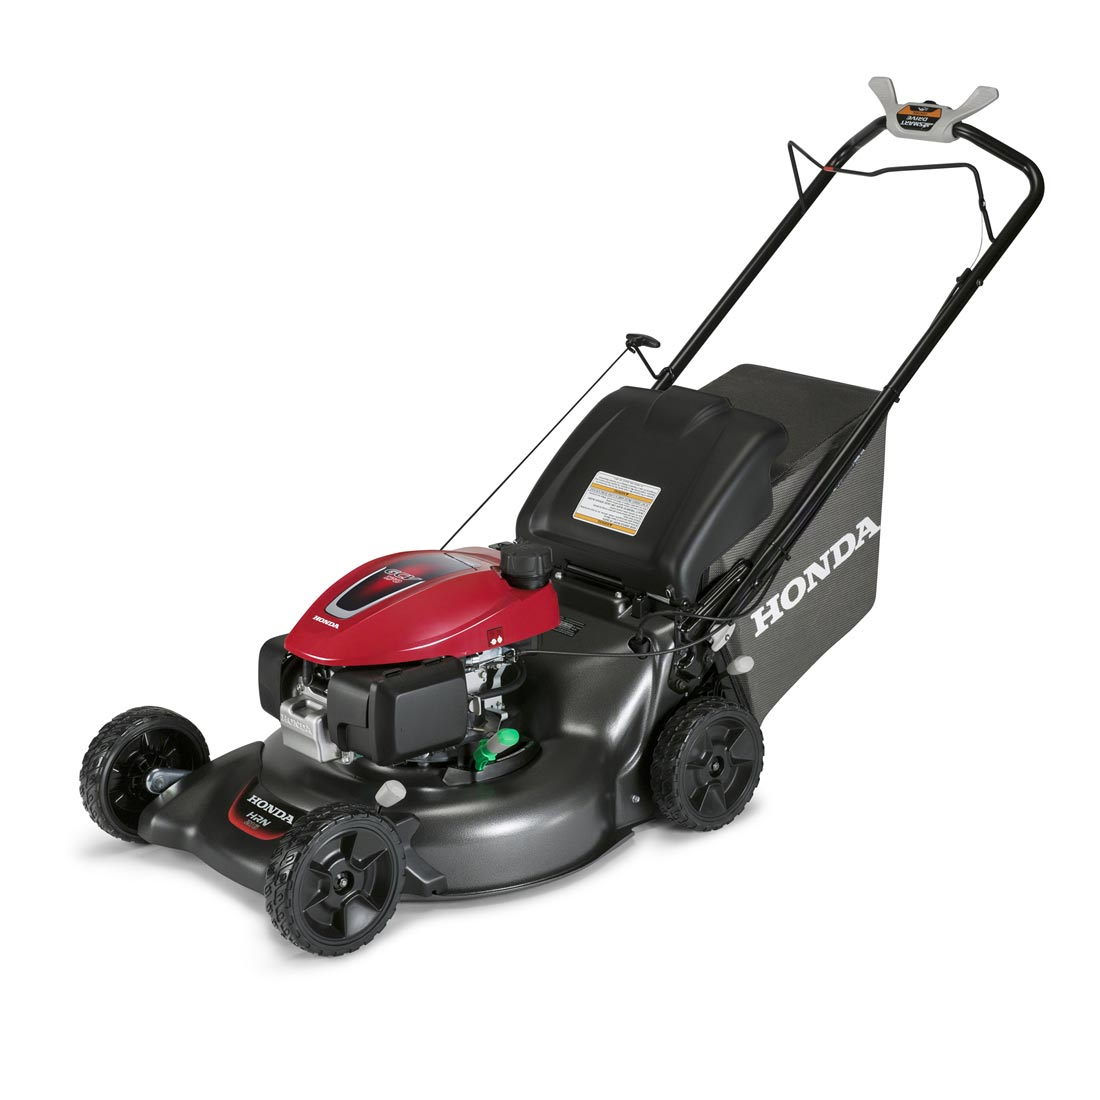 Lawn mower being used in the garden